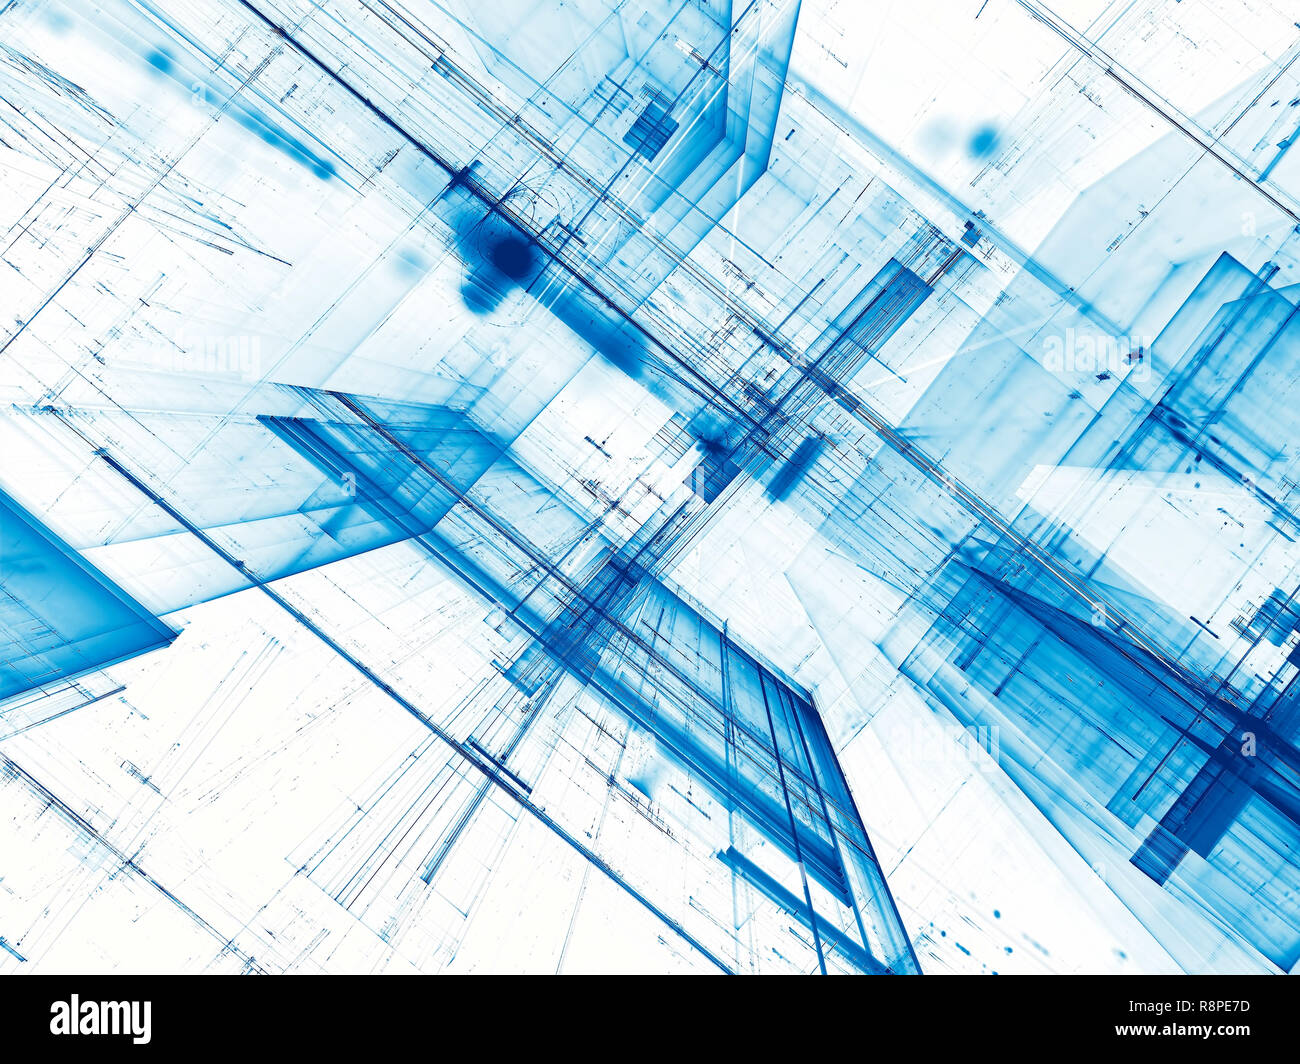 White and blue tech or sci-fi background - abstract computer-generated 3d illustration. Contemporary digital art: diagonal inclined walls with chaos l Stock Photo